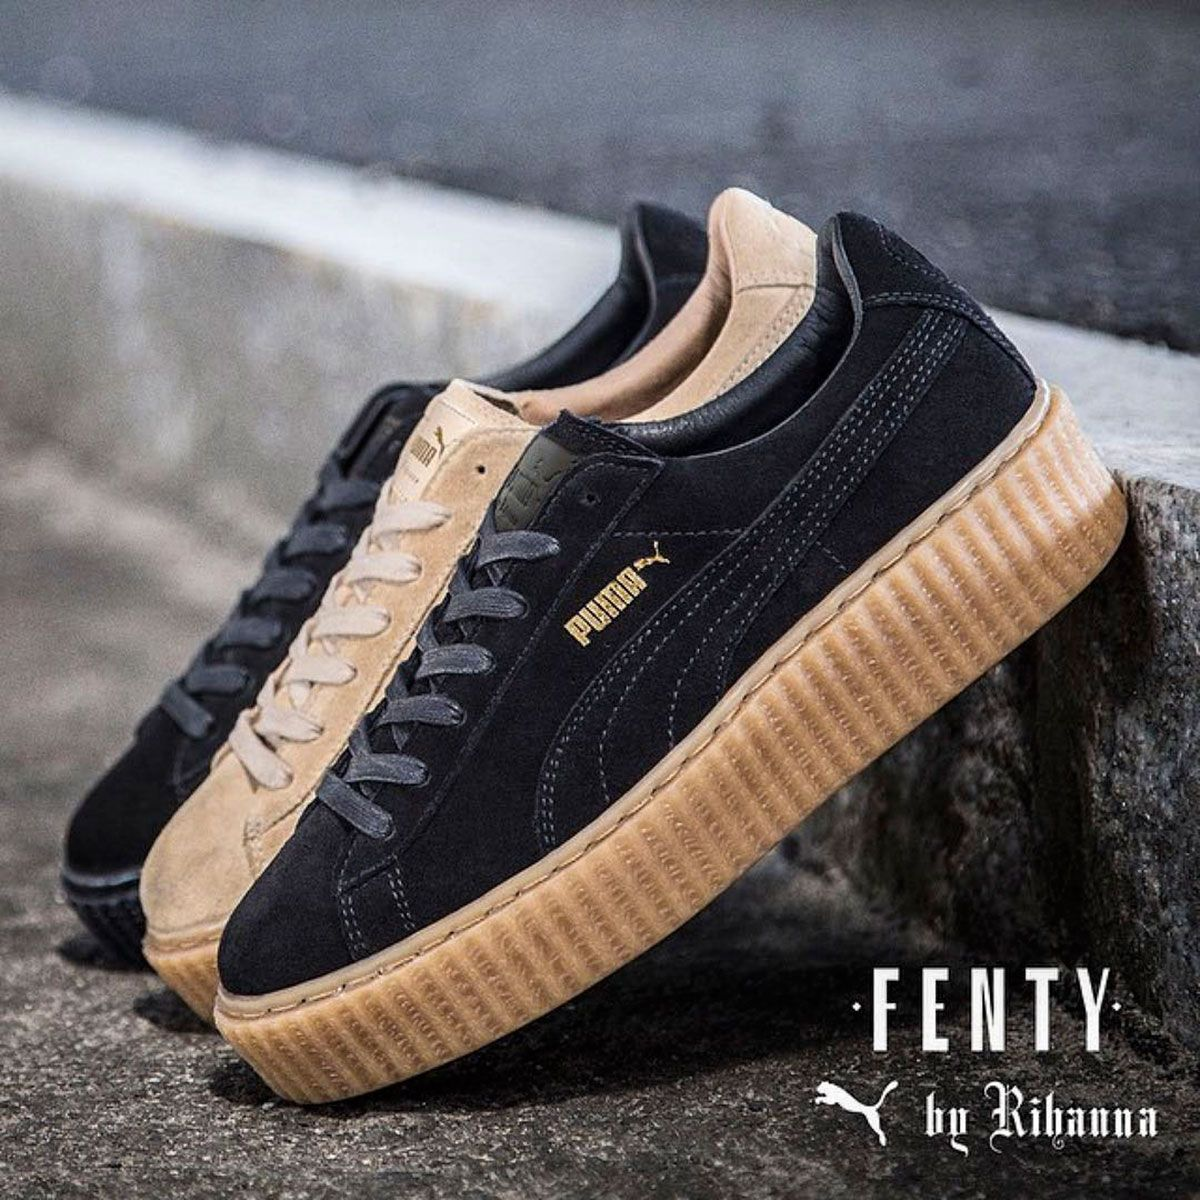 hot sale online ddc0b 81972 Rihanna Fenty Puma Creepers sold out online | Shoes ...